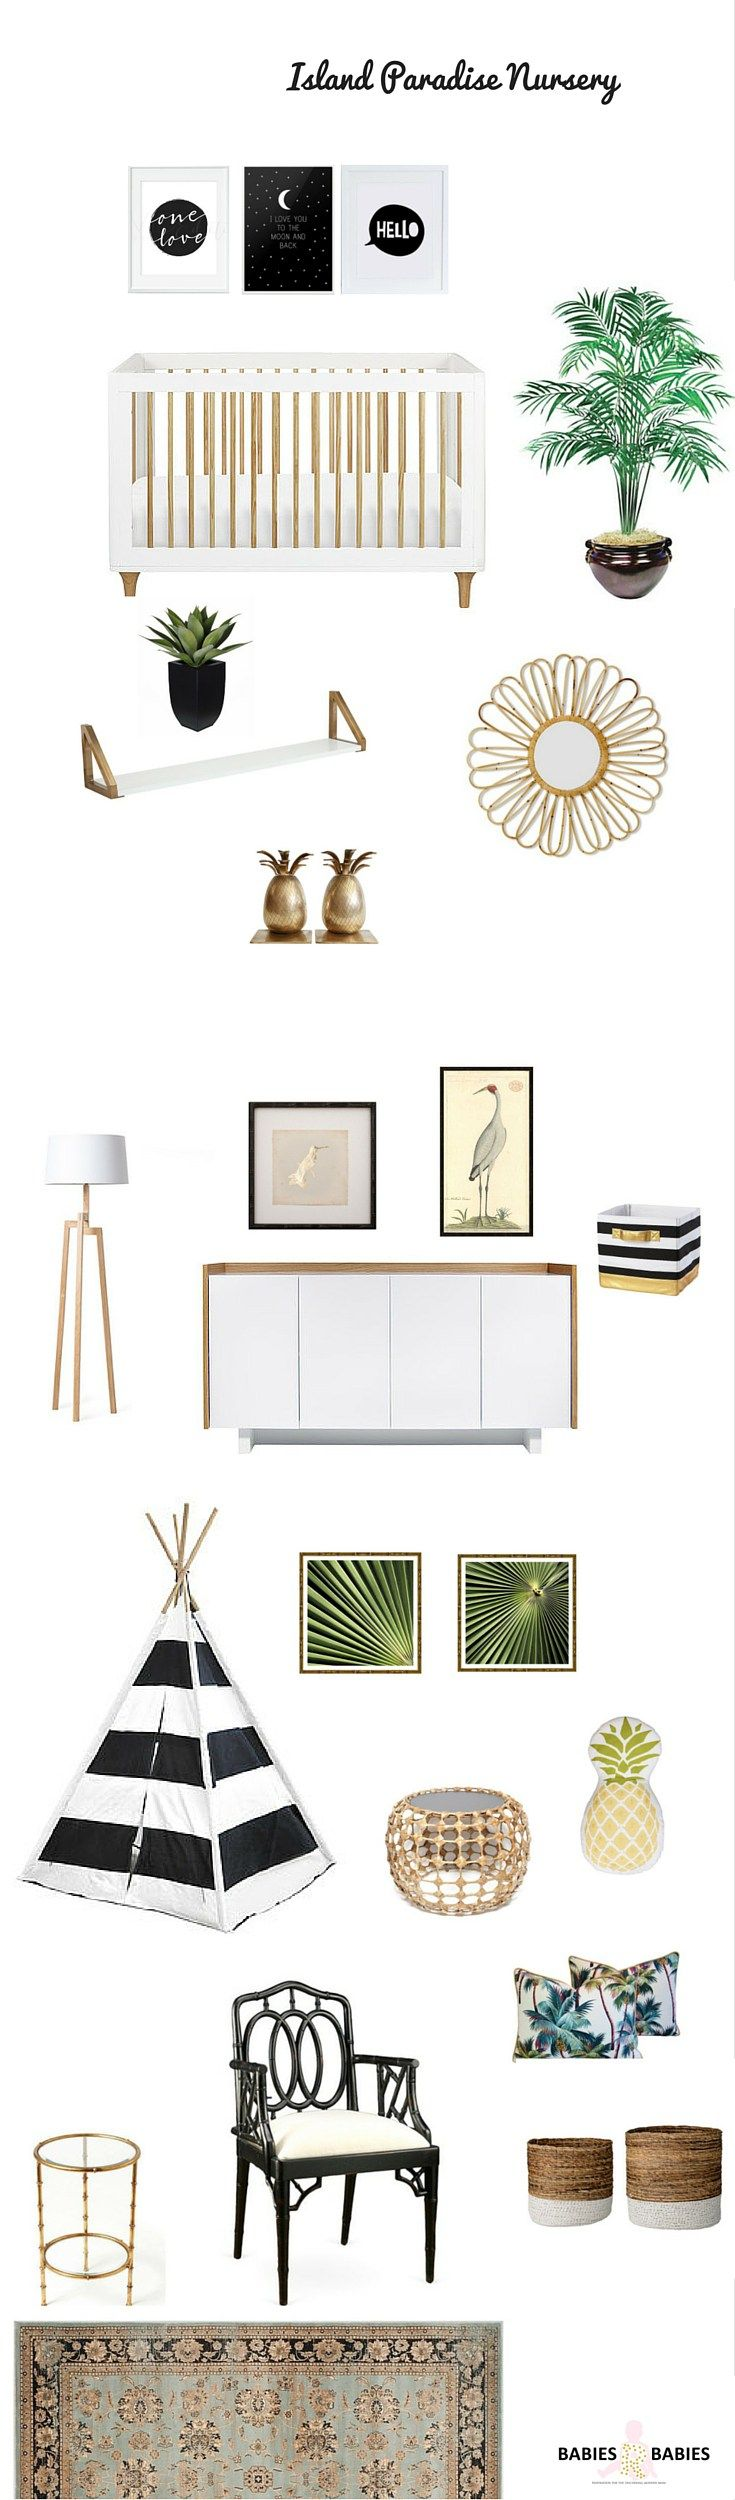 An island paradise tropical baby nursery with bold tropical prints and lots of natural materials such as rattan, cane and bamboo as well as sprinklings of black and gold to create a modern tropical nursery.